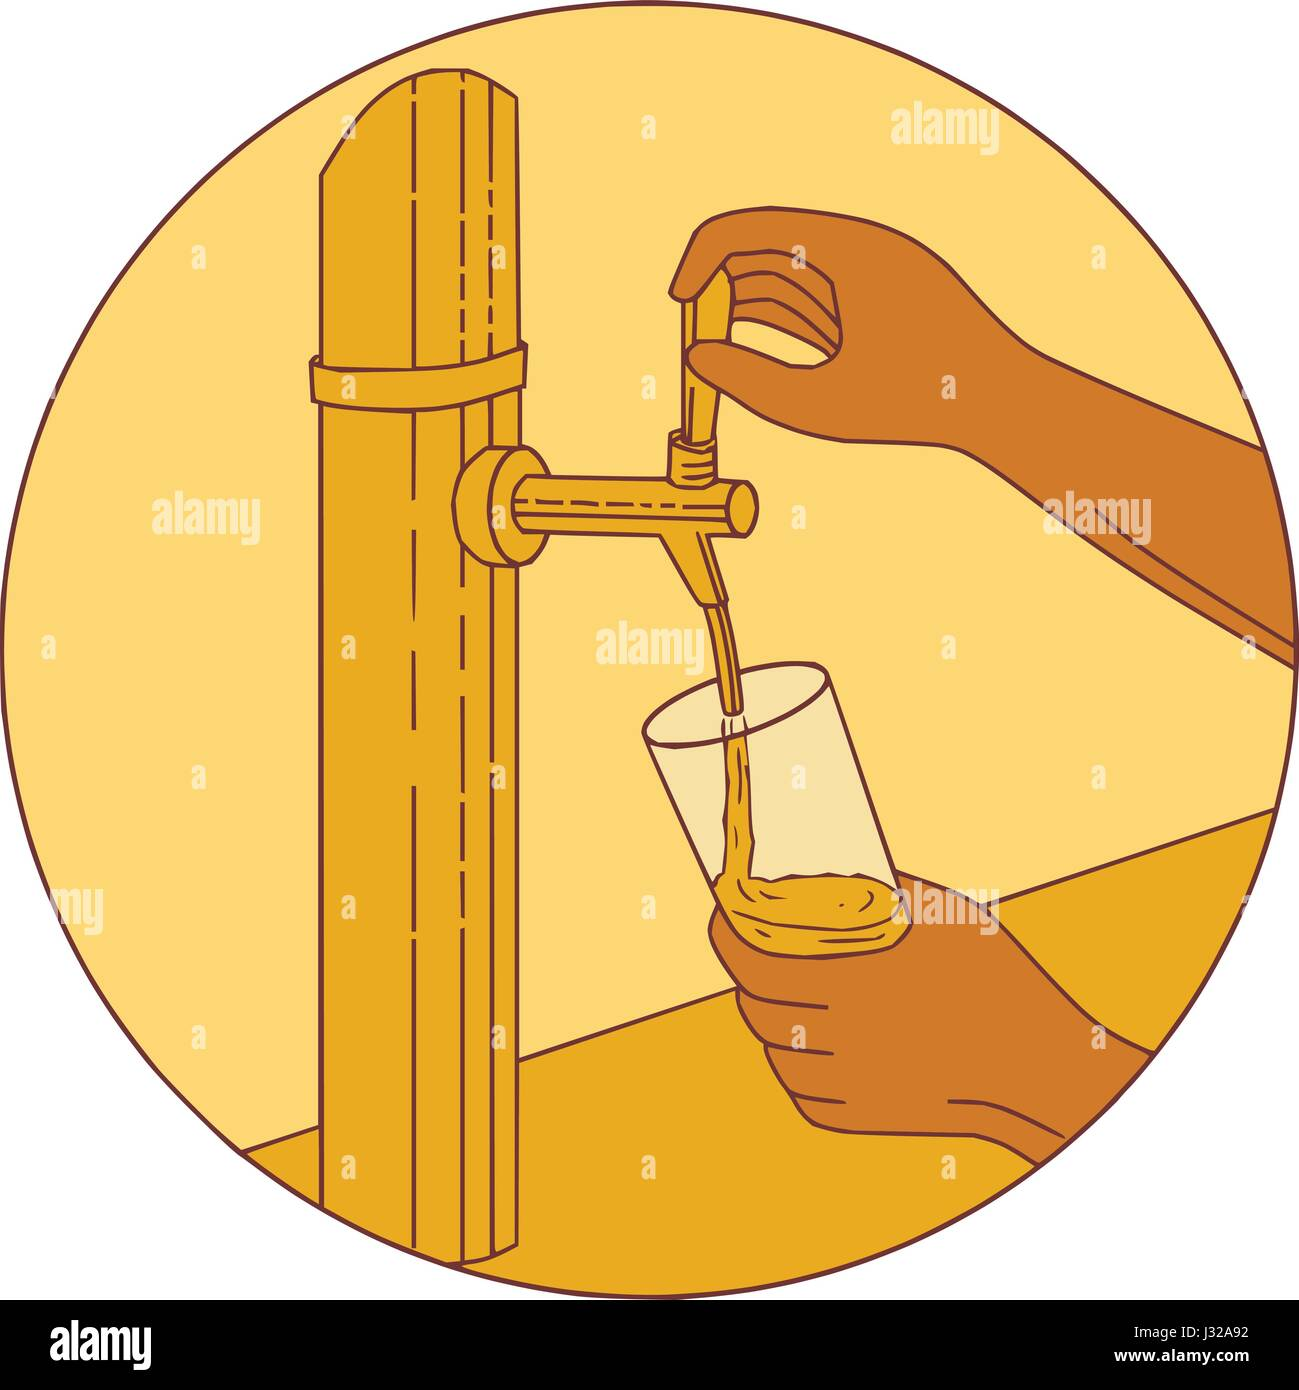 Drawing sketch style illustration of a hand holding glass pouring beer from tap set inside circle viewed from front. - Stock Vector